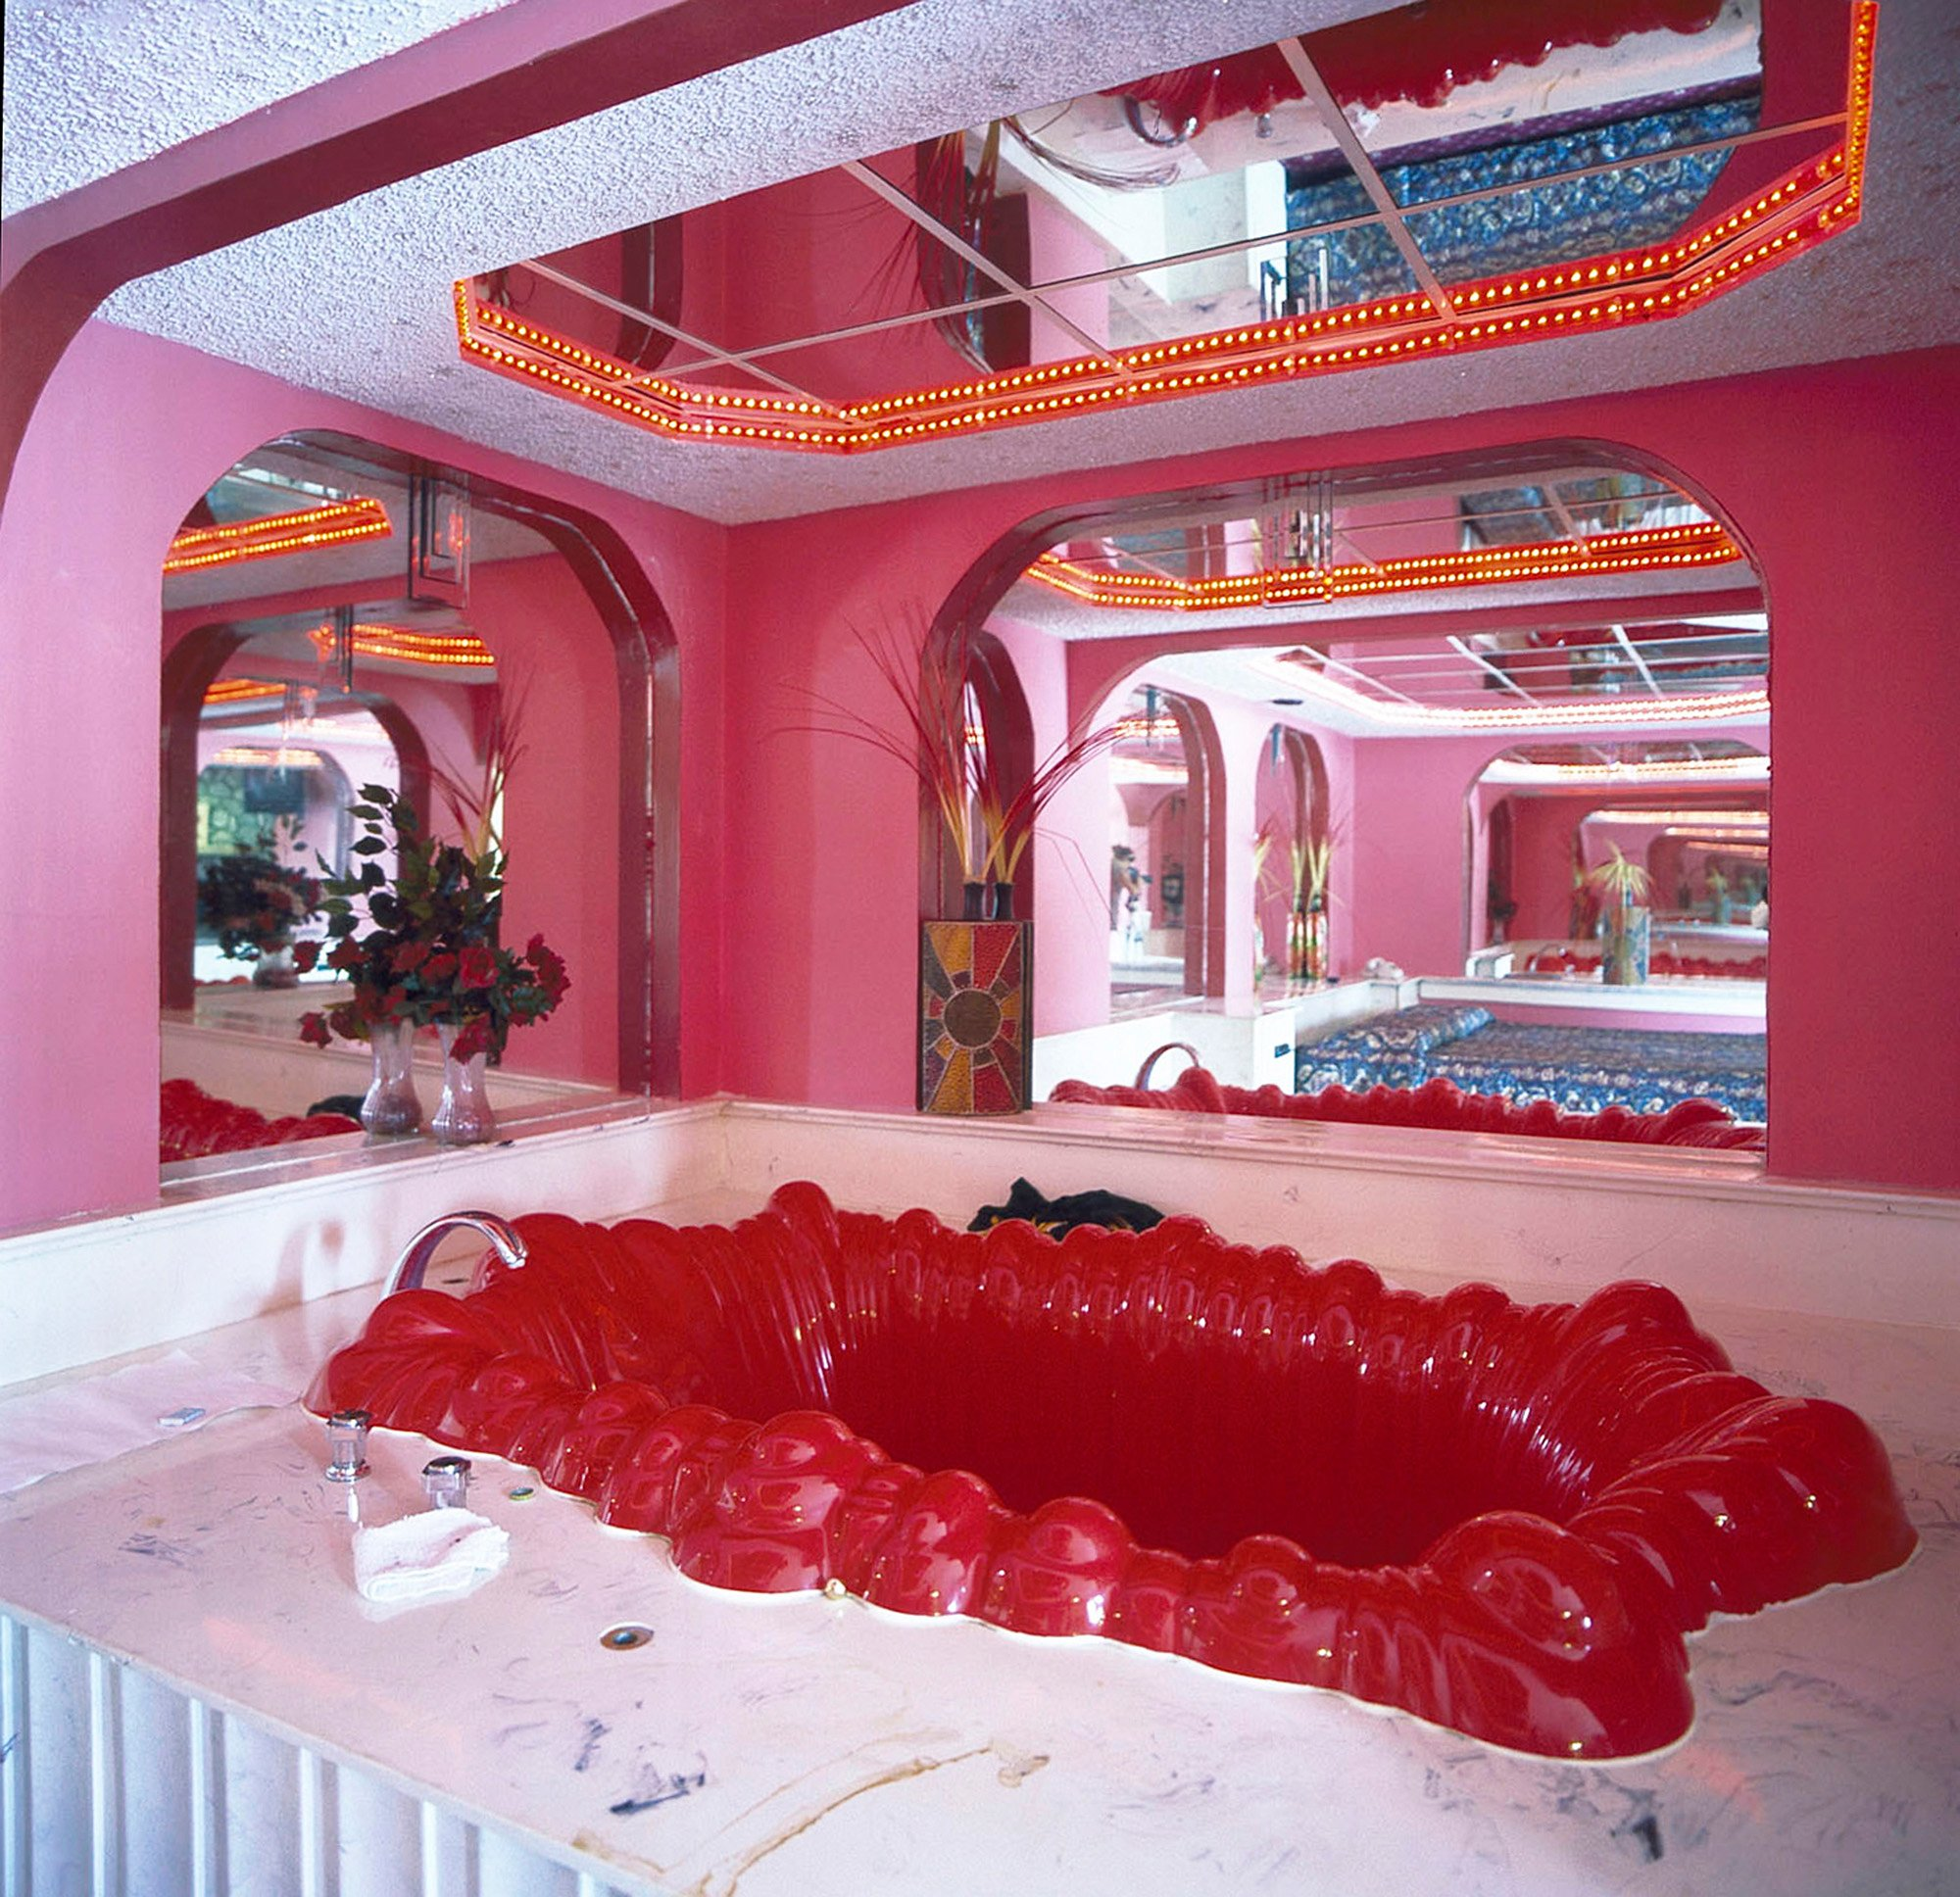 Ciudad France Bareilly Love In Hotels